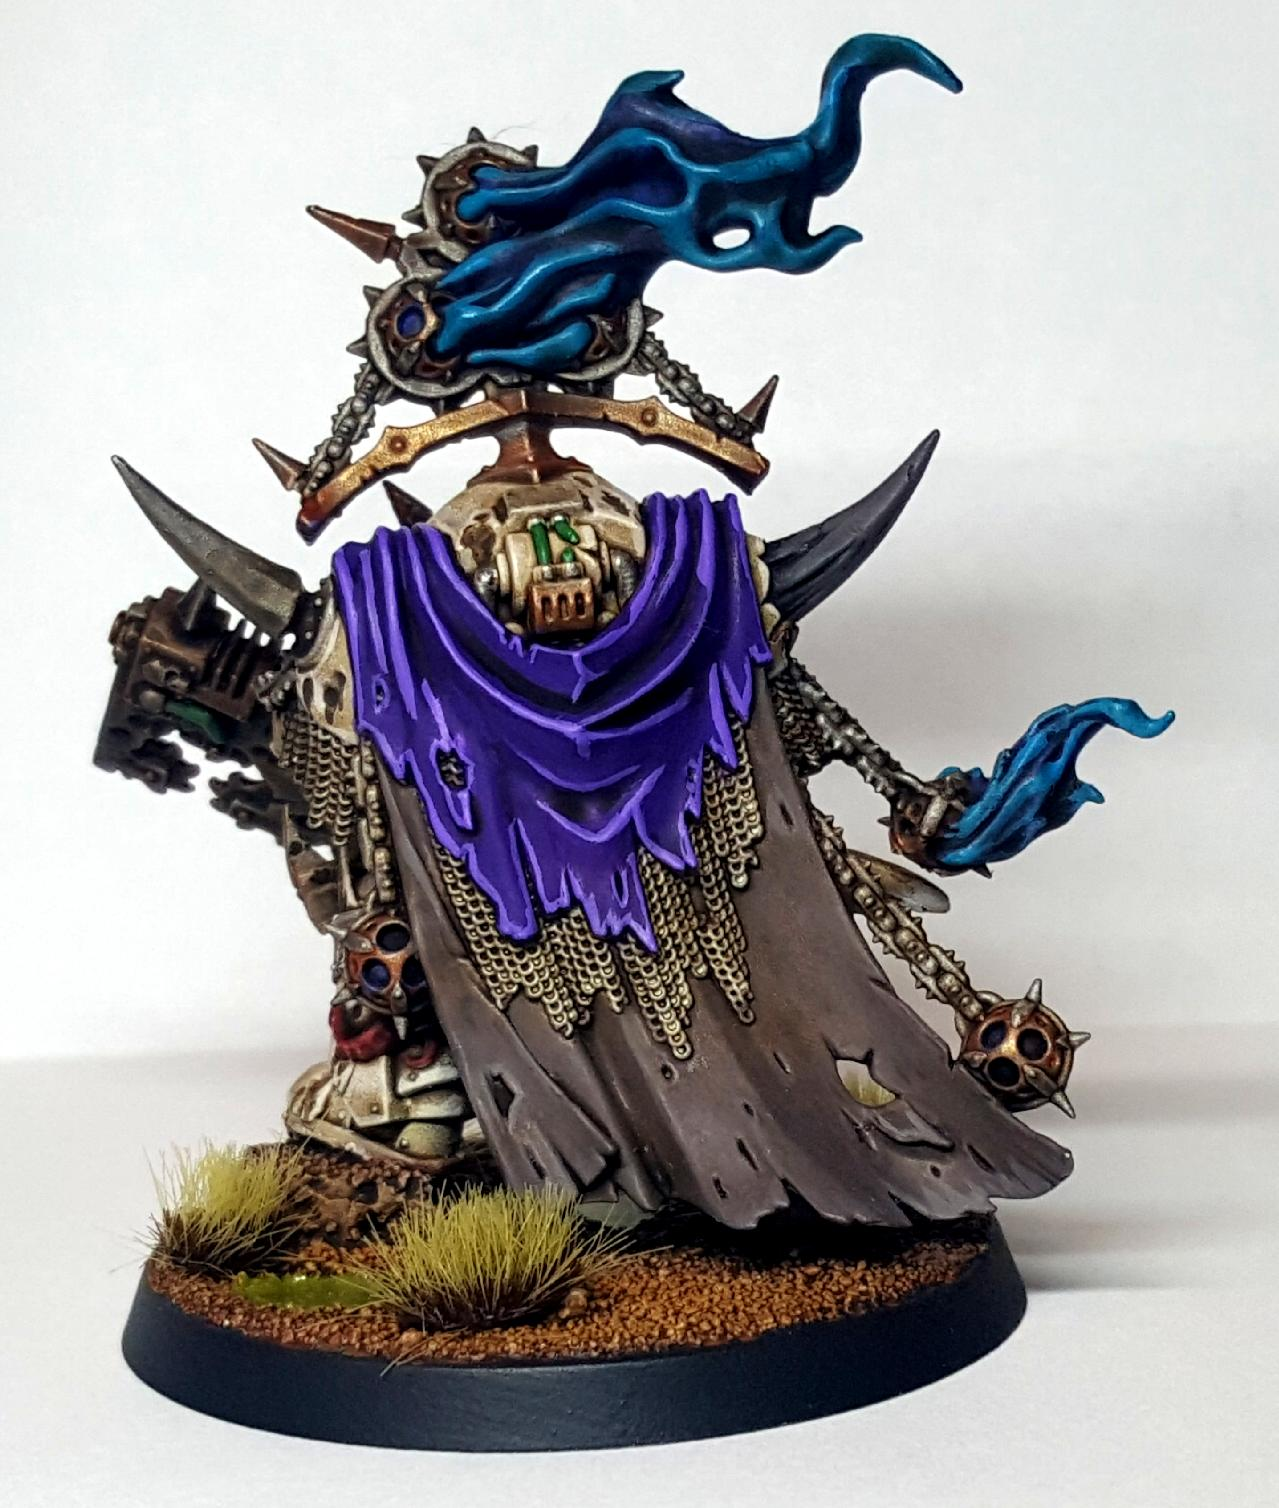 Death Guard, Dg, Lord of Contagion - Back